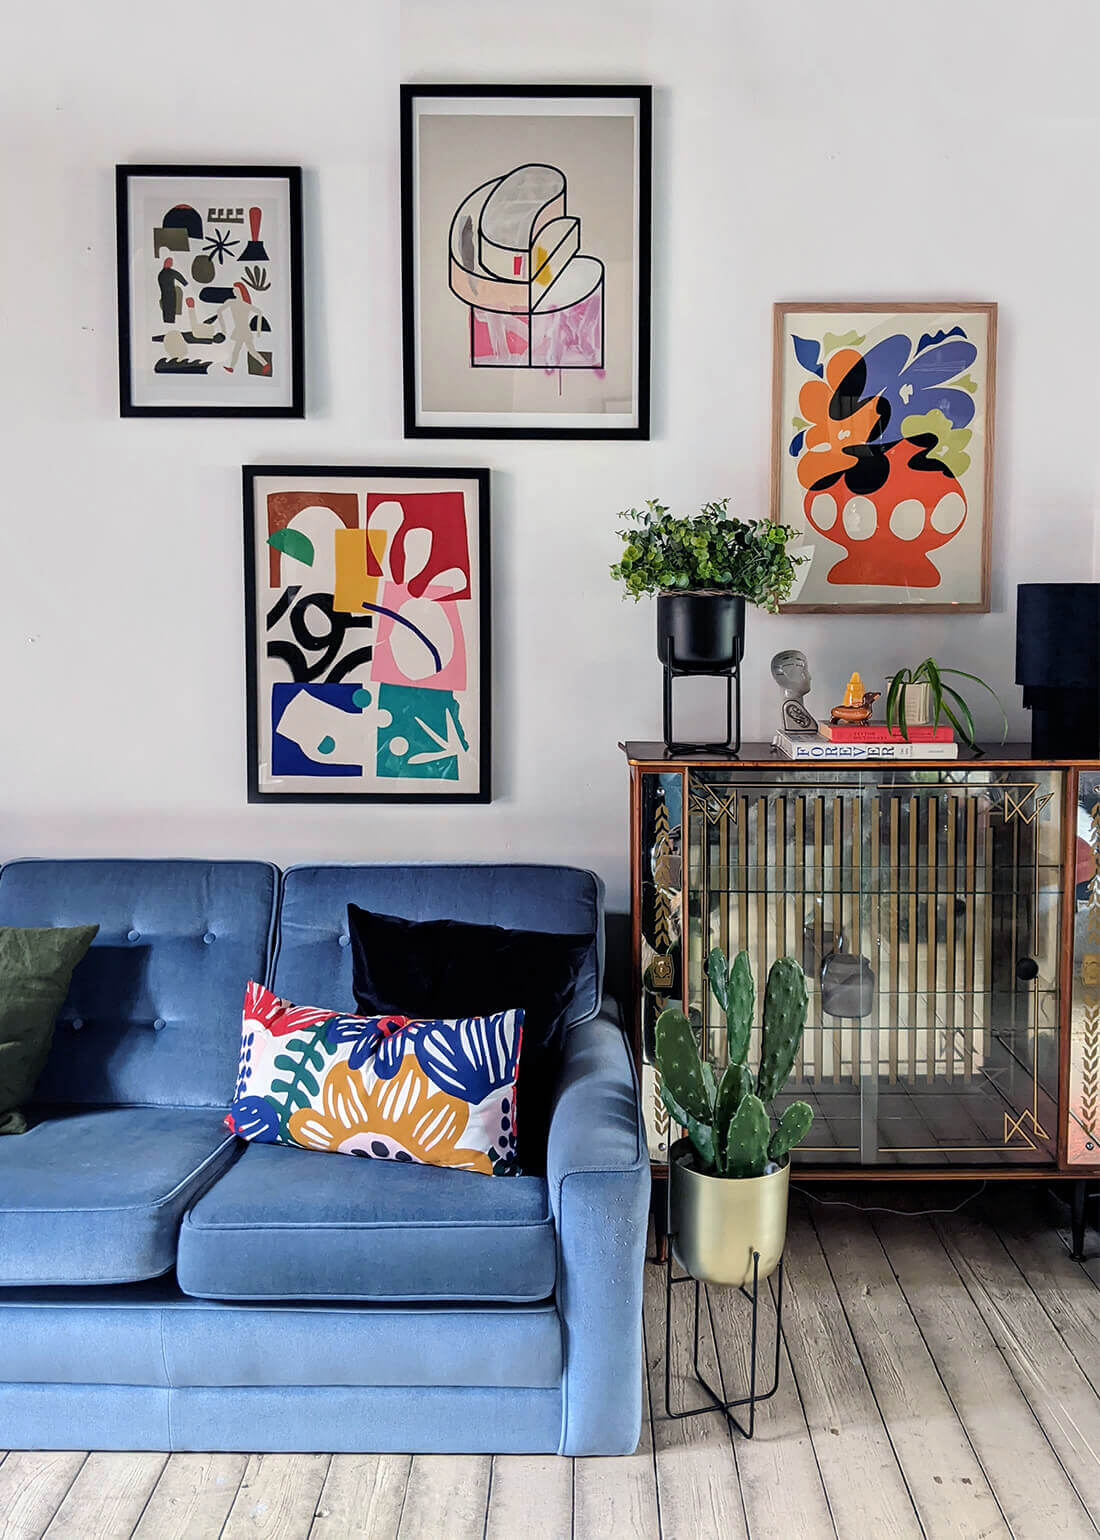 interior styling and gallery wall by roxanne from ourgreyhaven